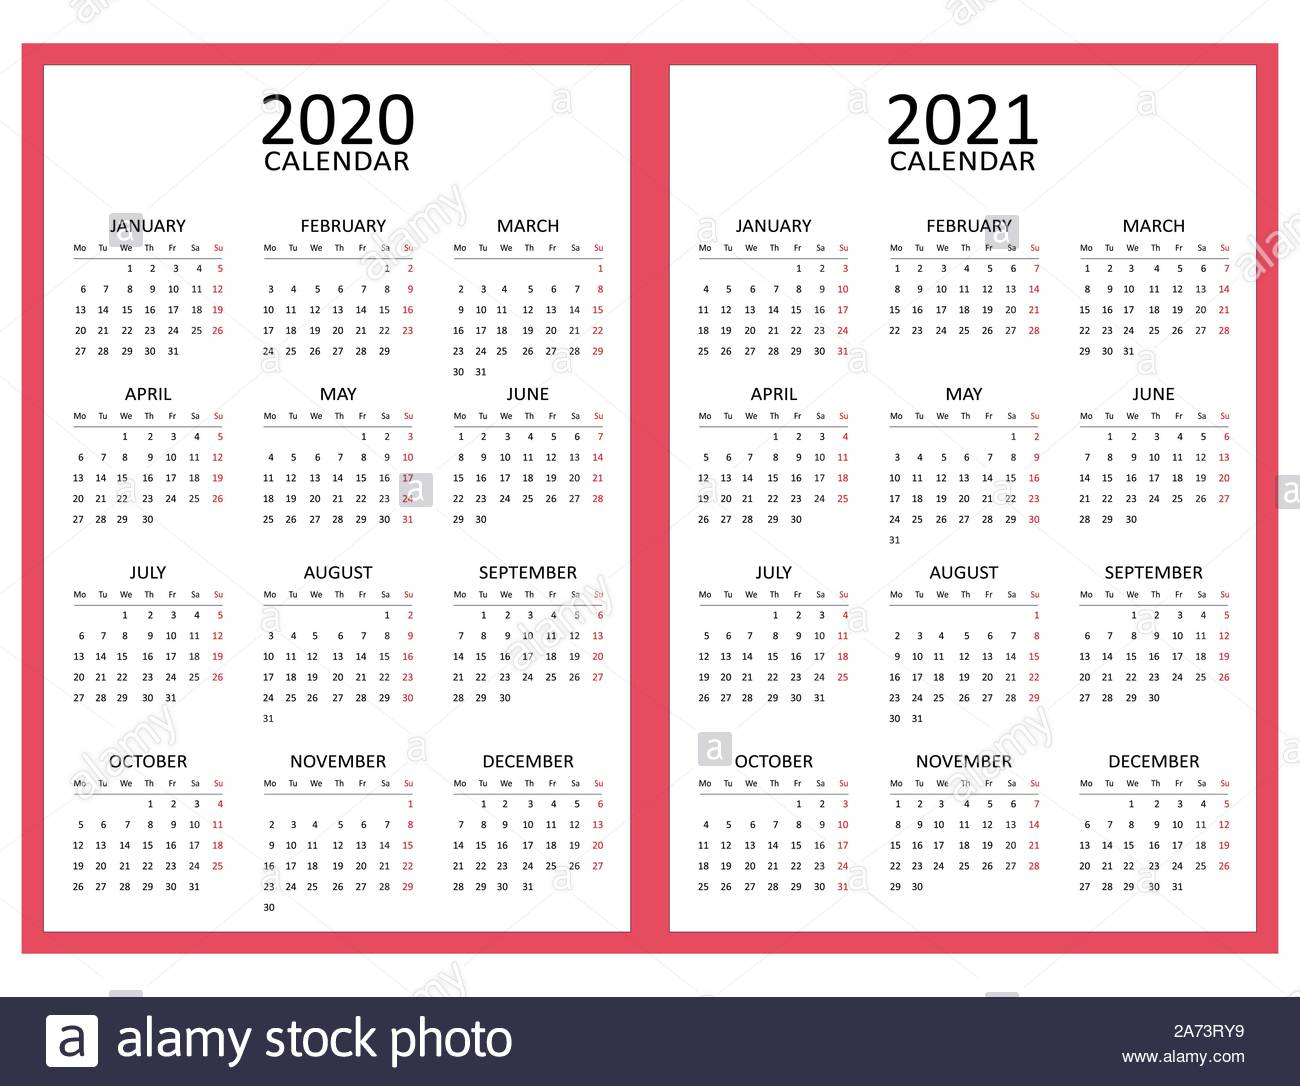 Simple Calendar Layout For Two Years 2020 And 2021. Starts